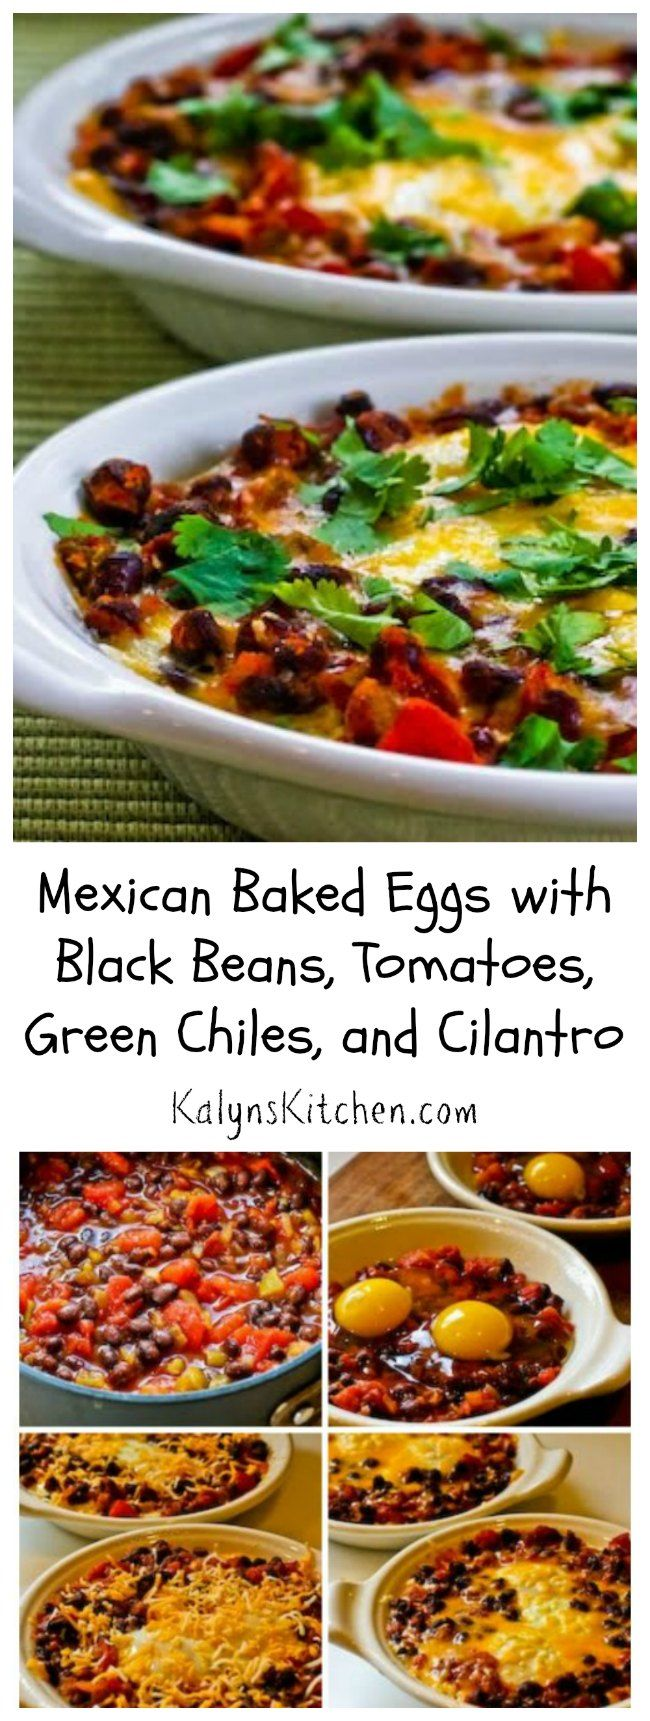 Mexican Baked Eggs with Black Beans, Tomatoes, Green Chiles, and Cilantro have been hugely popular on the blog, and this would be such a fun breakfast idea for Cinco de Mayo!  You can make a big casserole dish with lots of eggs if you're serving a crowd. [from KalynsKitchen.com]